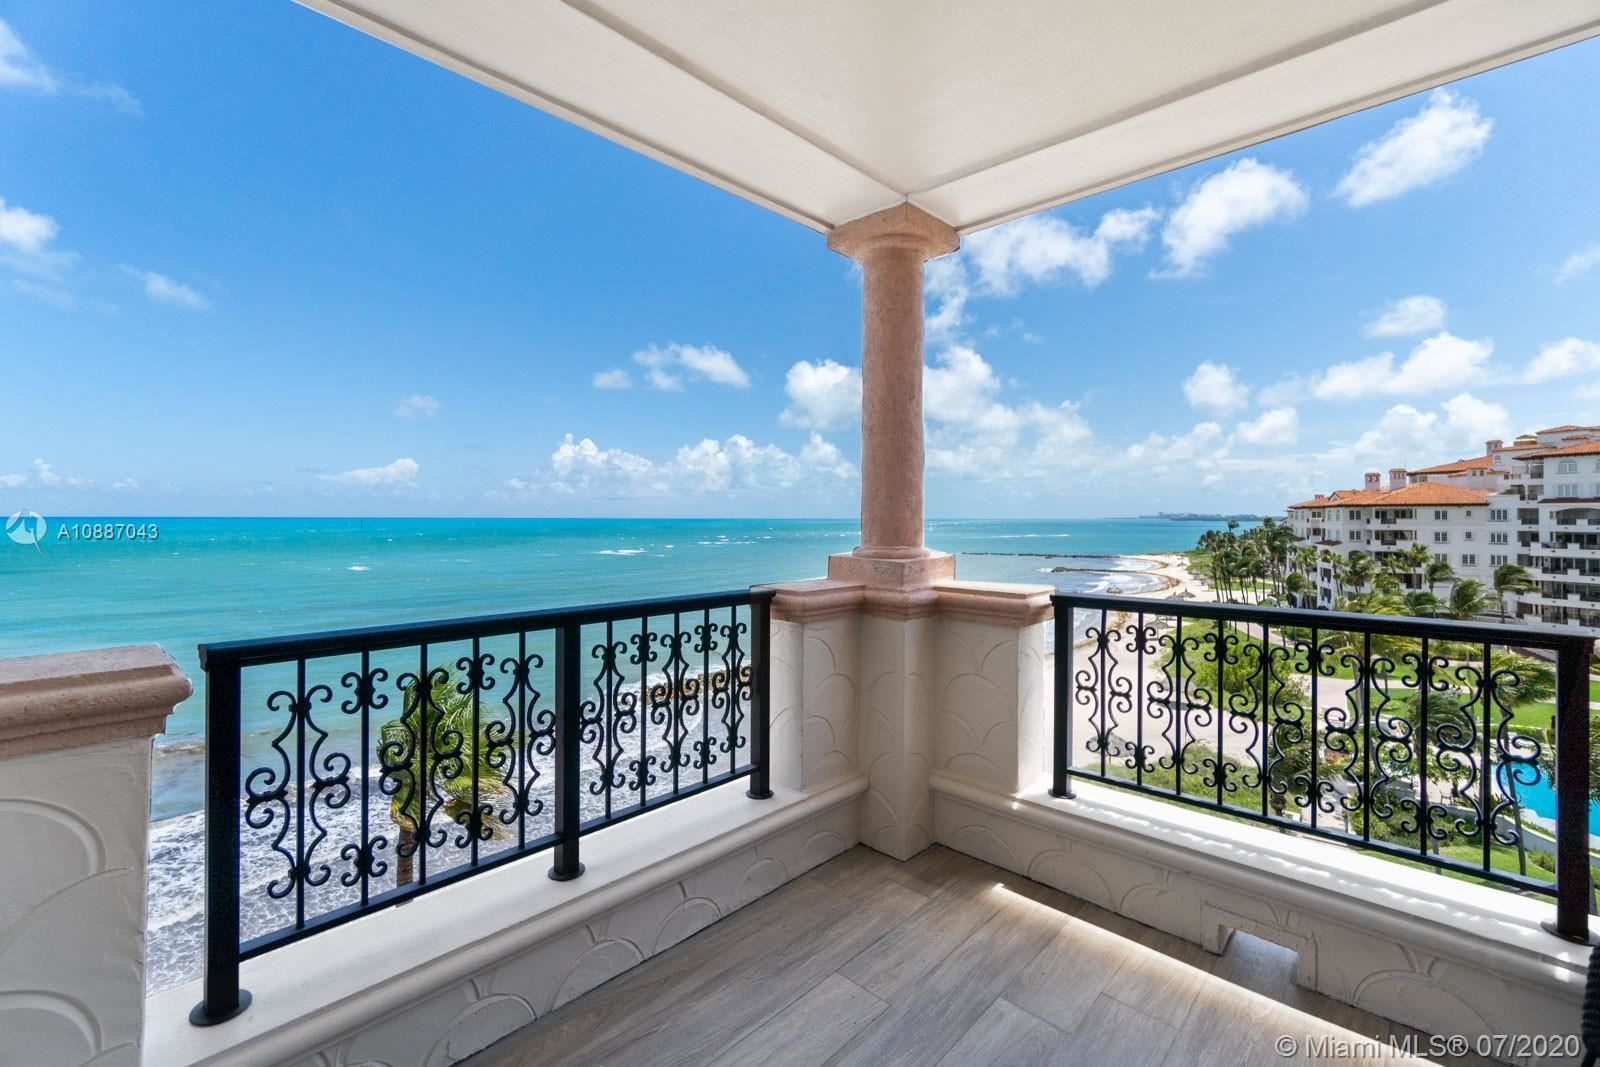 Photo 18 of Listing MLS a10887043 in 7764 Fisher Island Dr #7764 Miami Beach FL 33109